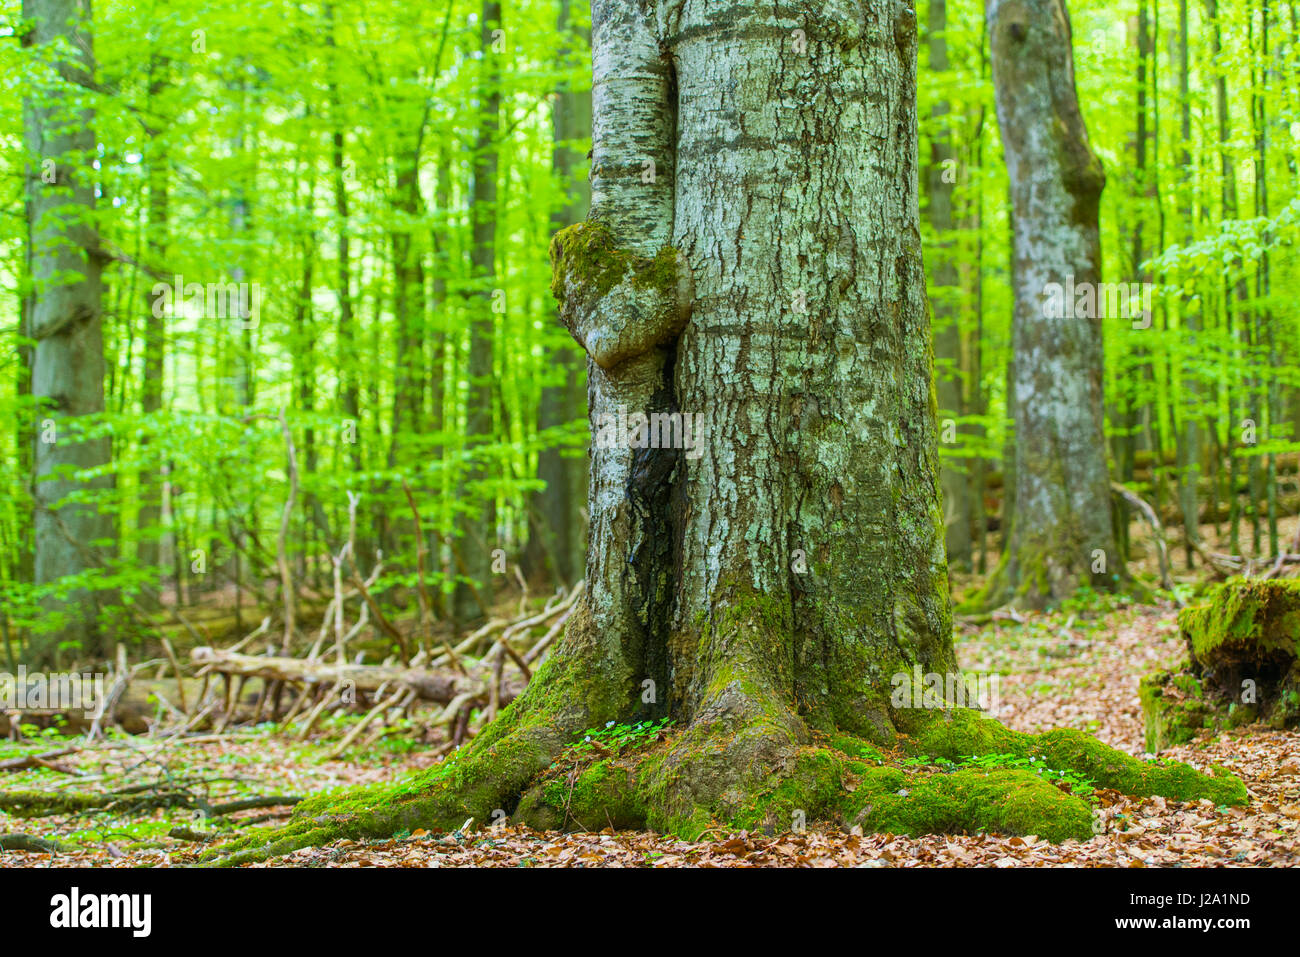 Primeval forest in the Bavarian forest National Park in Germany Stock Photo